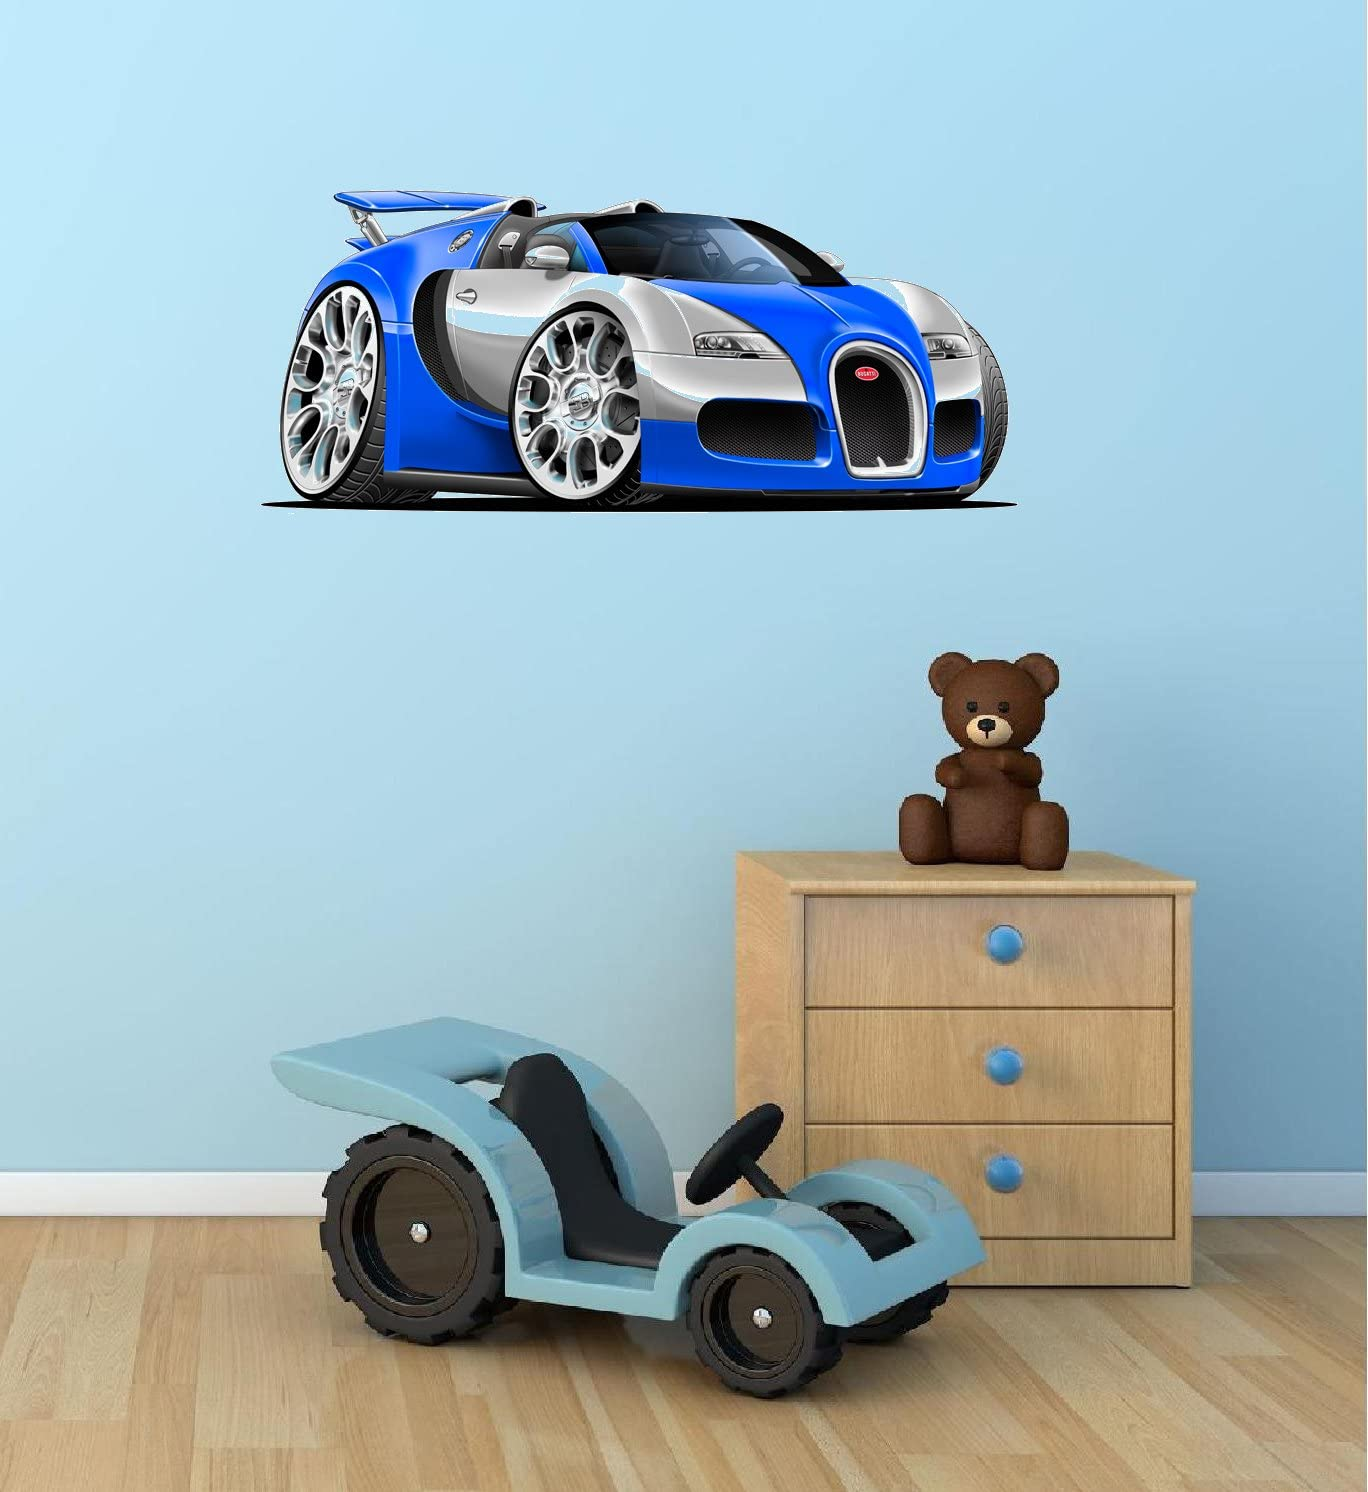 "24"" 2010 Bugatti Veyron Grand Sport BLUE w/ SILVER super car cartoon Wall Graphic Sticker Decal Kids Race Game Room Man Cave Garage Art Room Decor NEW"